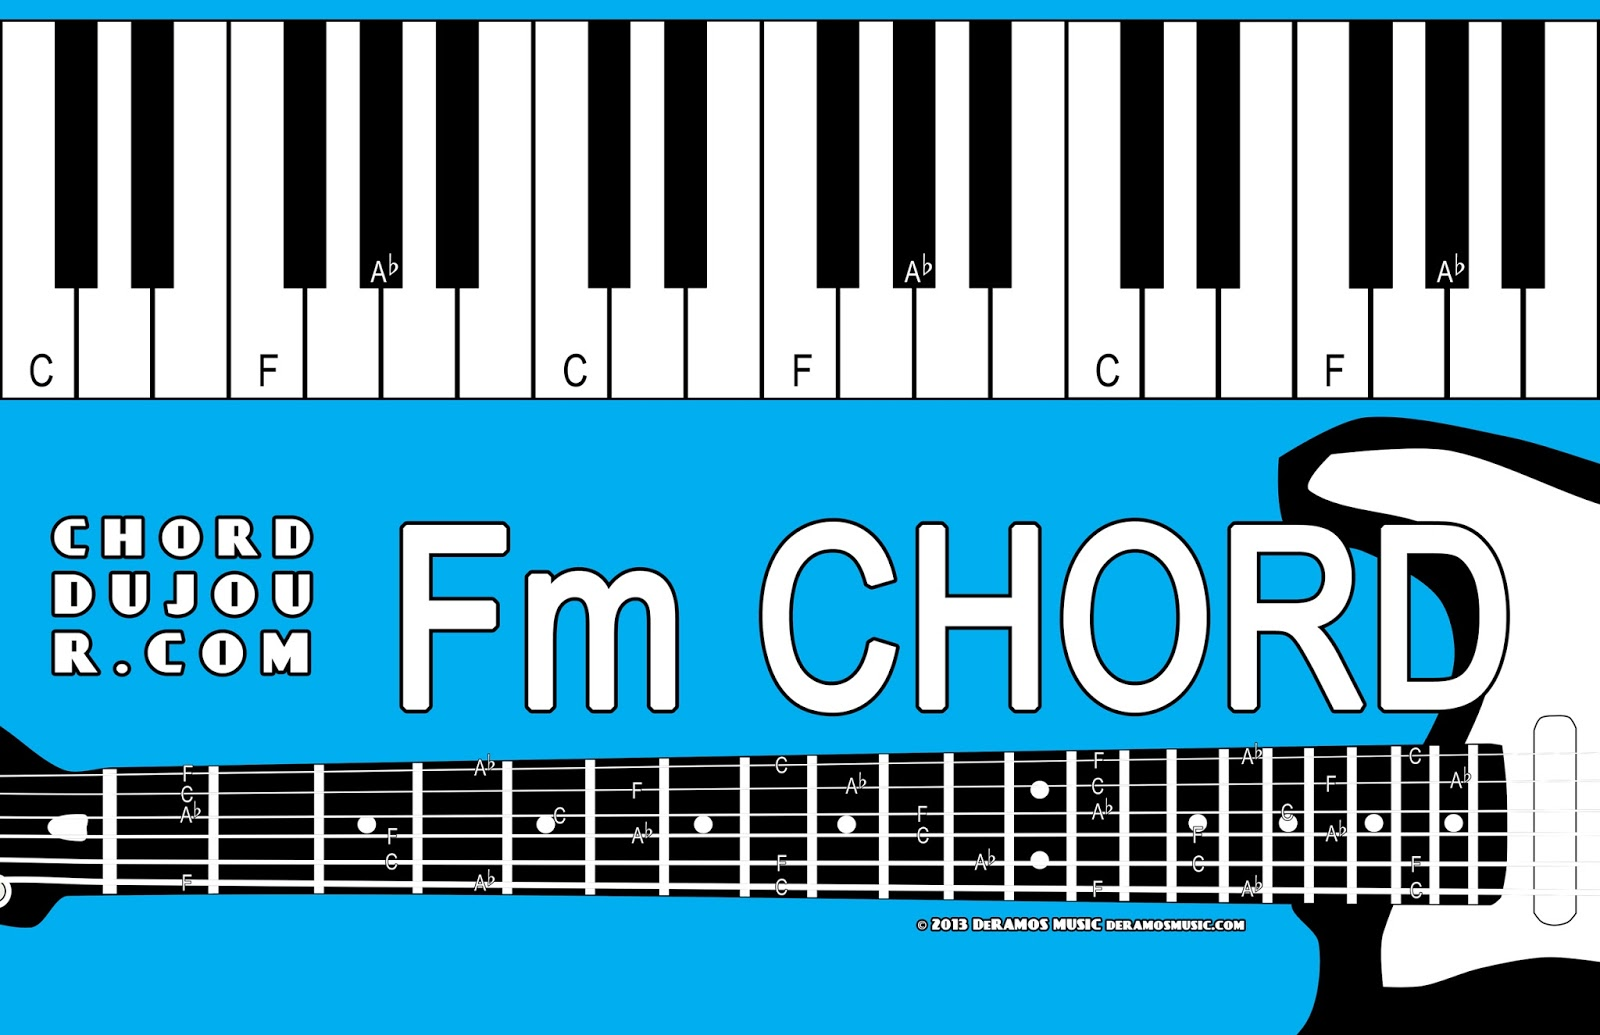 Chord du jour dictionary fm chord dictionary fm chord hexwebz Image collections